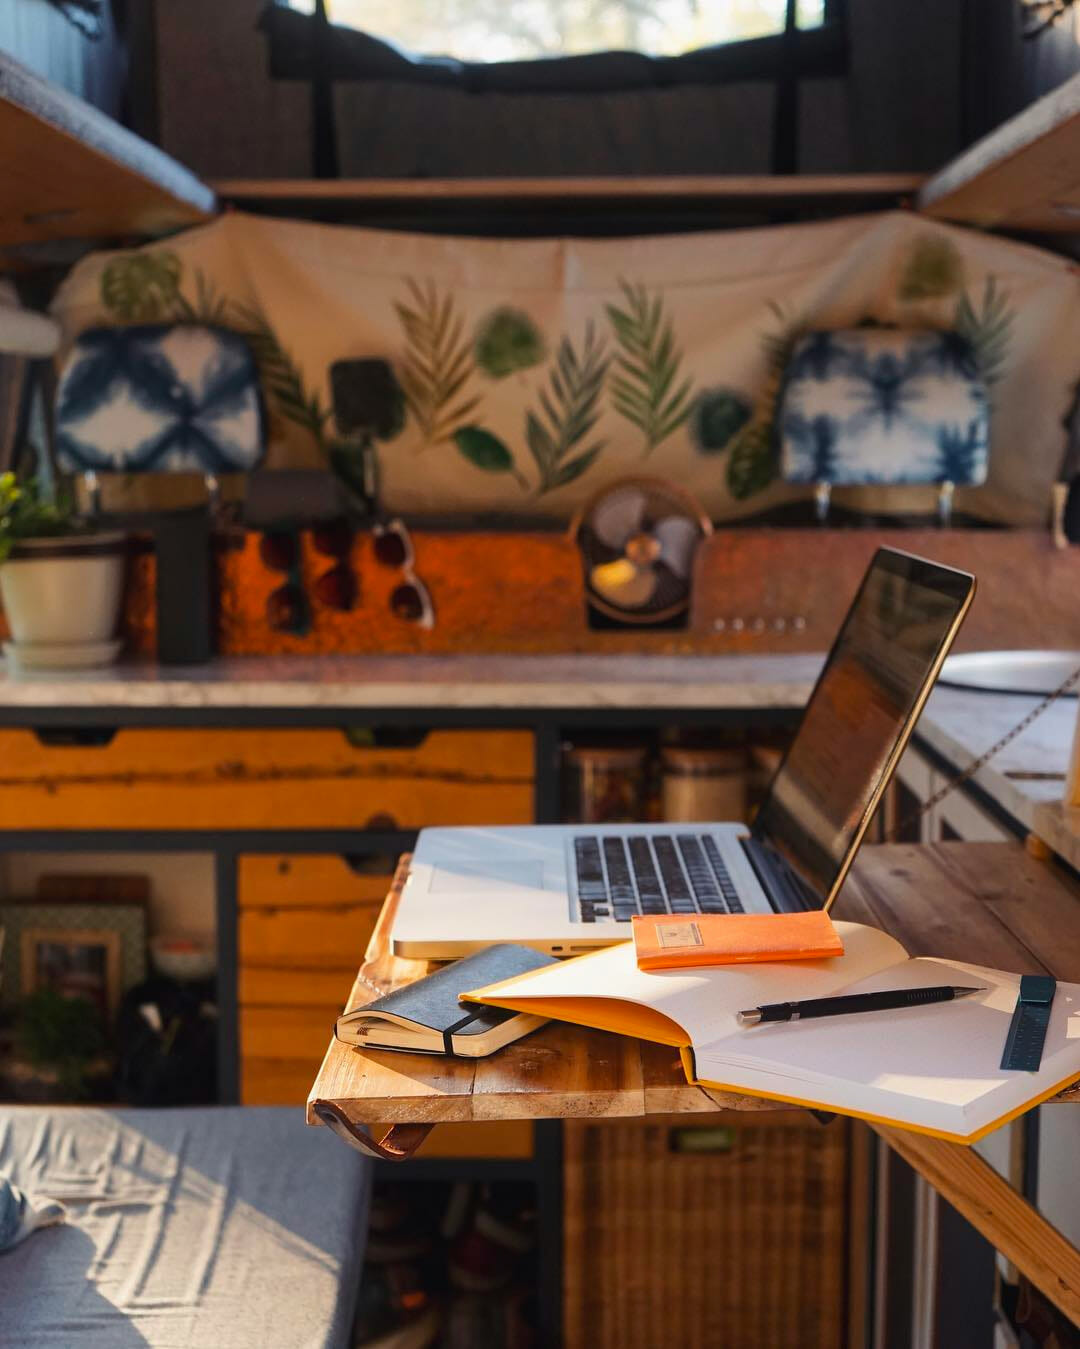 workspace ideas for building an office into a campervan conversion